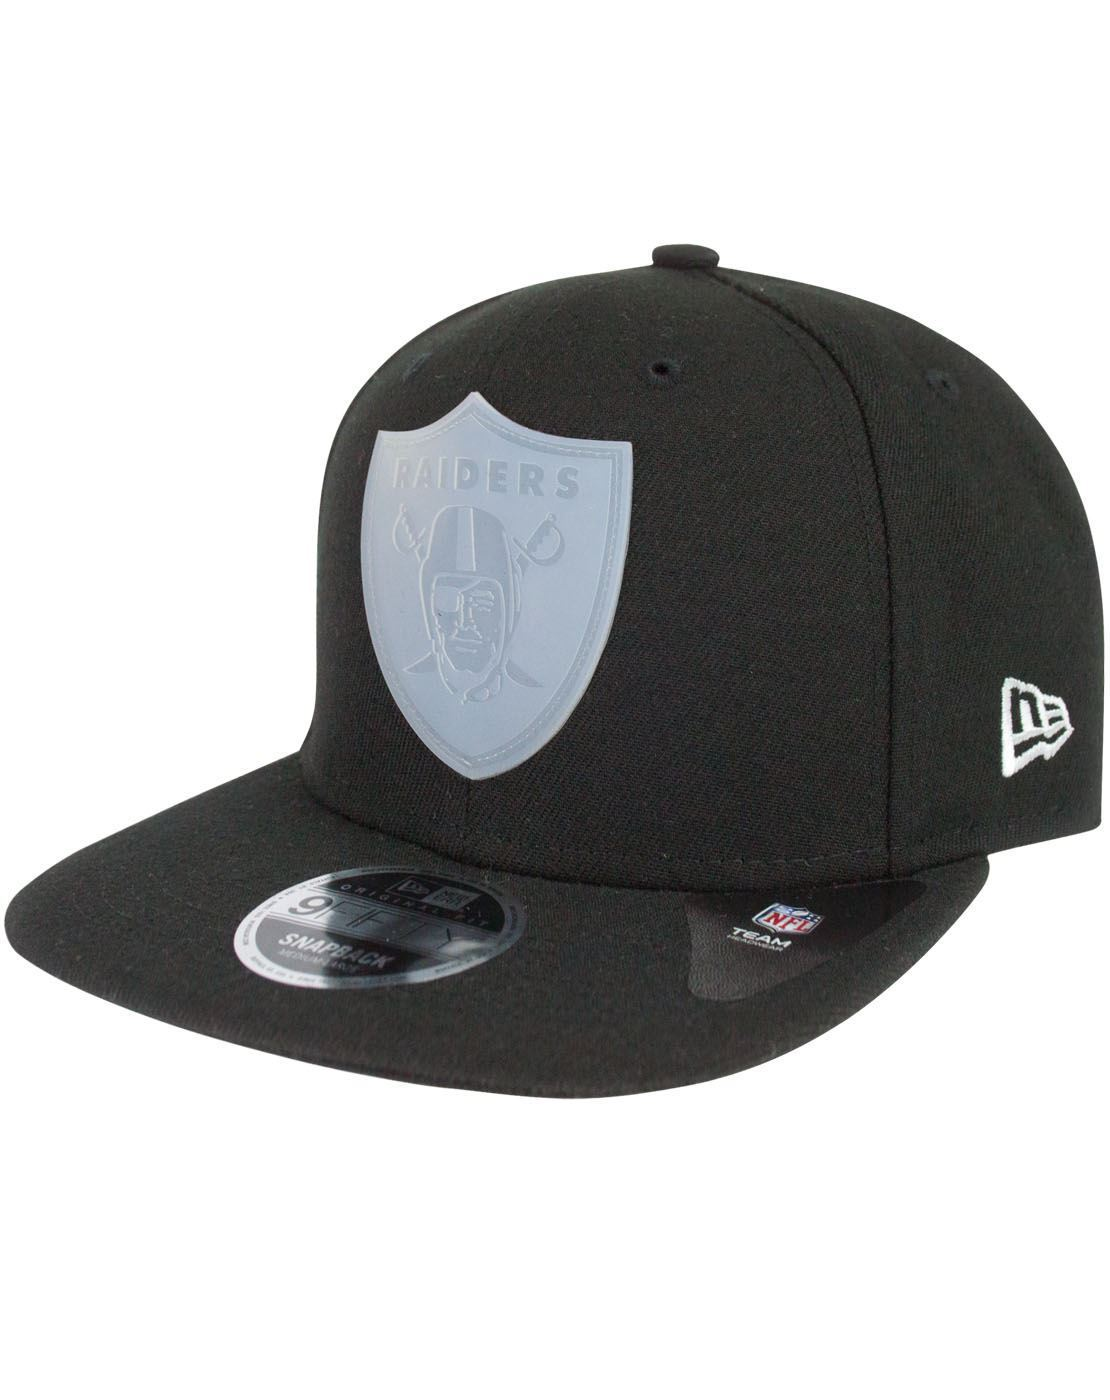 2bd5433d866 New Era 9Fifty NFL Oakland Raiders Transparent Logo Snapback Cap – Vanilla  Underground